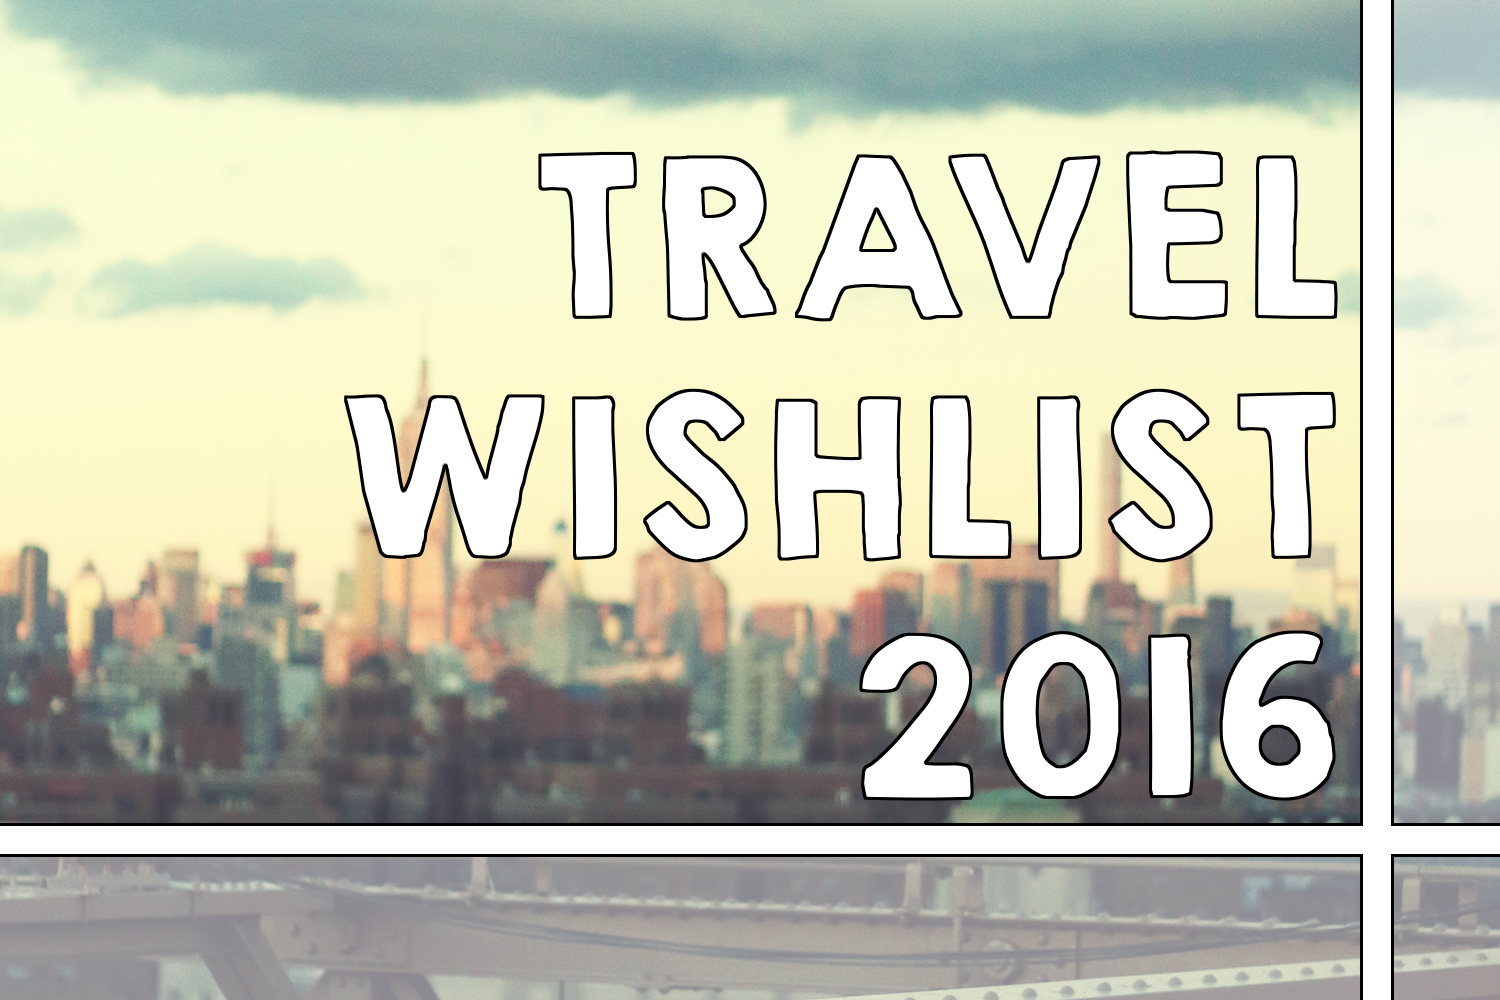 travelwishlist-3.jpg